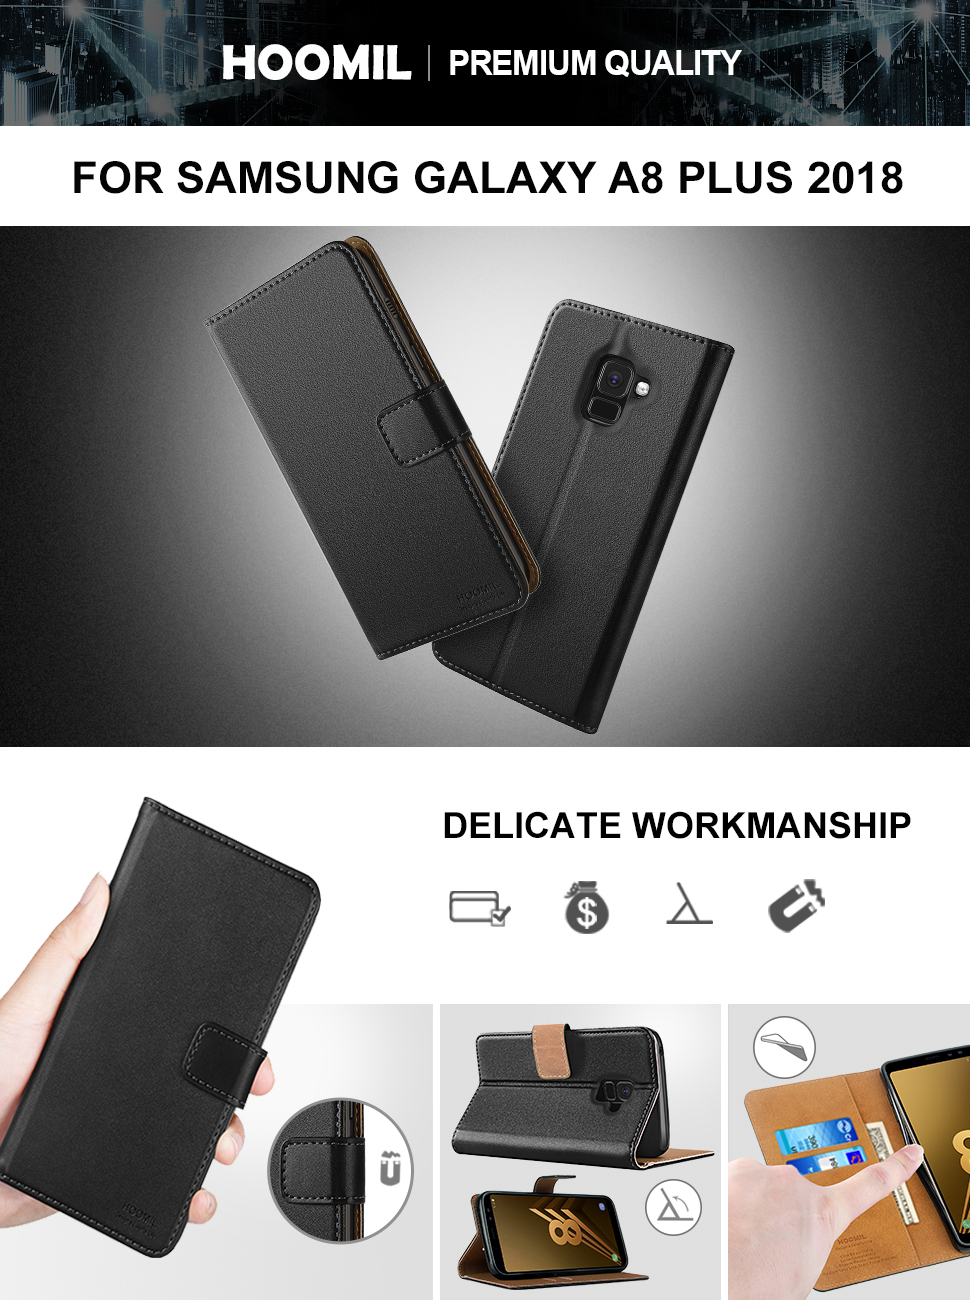 Samsung Galaxy A8 Plus 2018 Premium Leather Flip Wallet Phone Case Cover (Black)